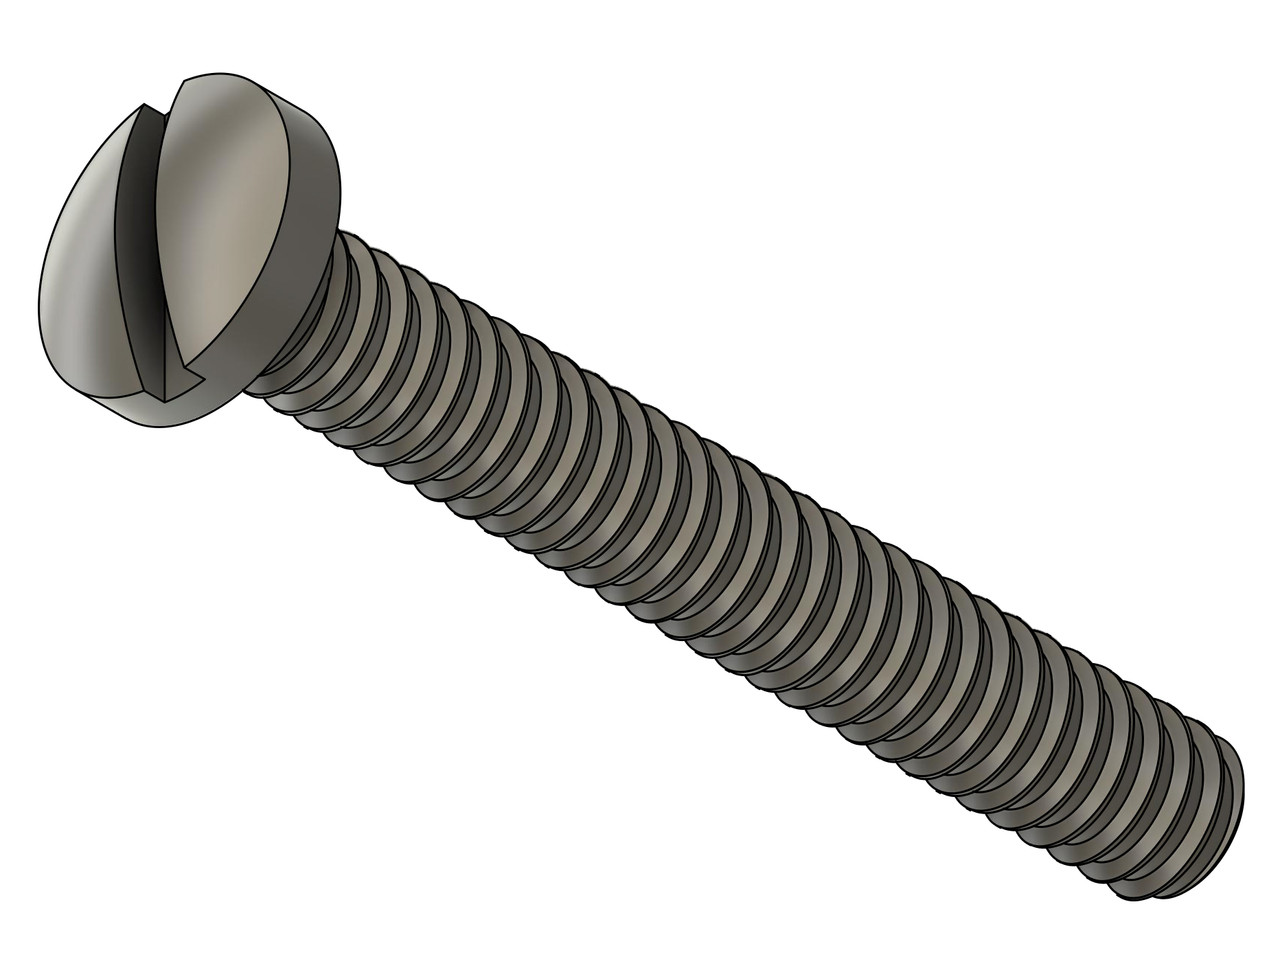 """Machine Screw Special  Thread M1.4, Pitch .30mm, Head Diameter 2.5mm, Threaded Length 9.7mm (3/8""""), Overall Length 10.5mm Material Stainless Steel, Finish Color """"Silver""""   Note: Thread is at maximum for M1.4 Thread.  This screw was designed for tight fit like class 3 fit instead of standard class 2.   Price is for 100 count package with bulk pricing available."""